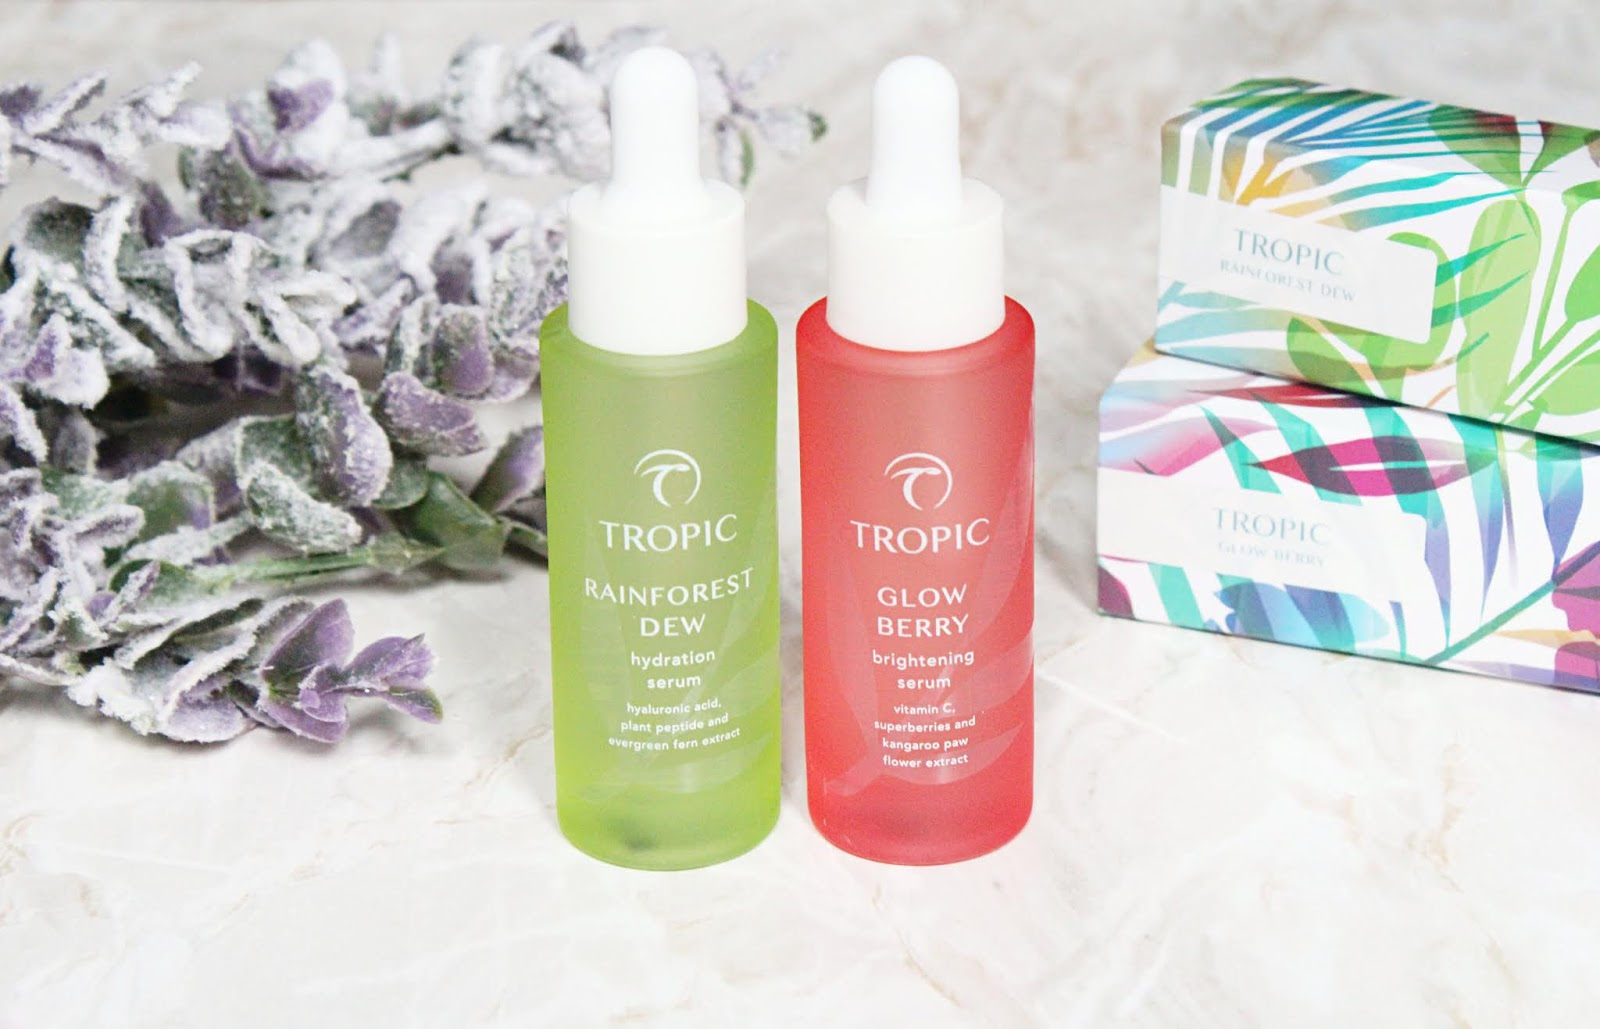 New Serums From Tropic Skincare Hannah Heartss